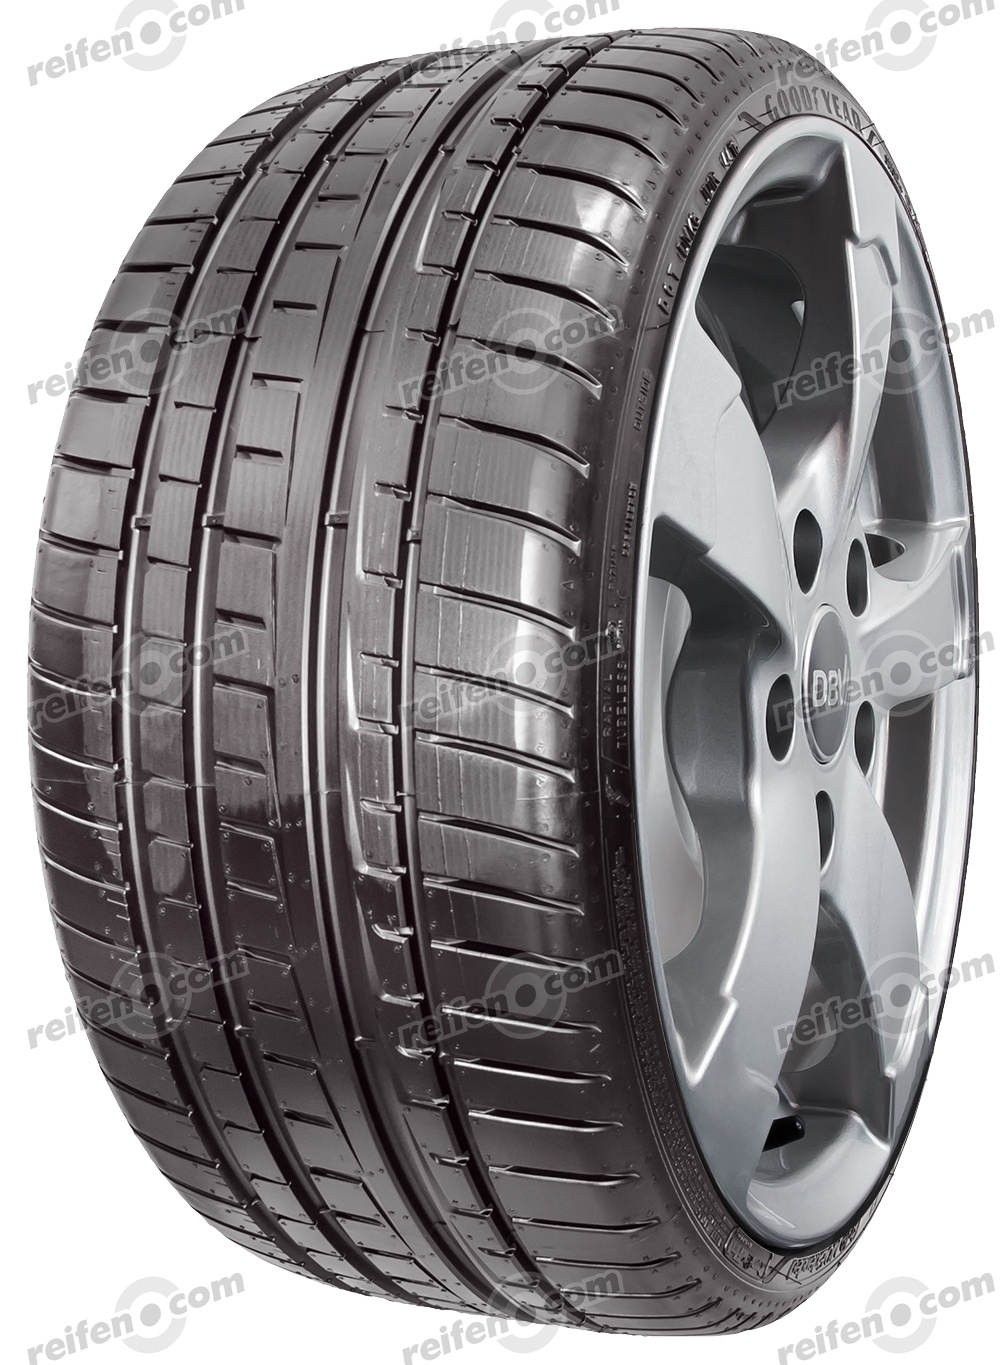 245/40 R18 97Y Eagle F1 Asymmetric 3 XL FP  Eagle F1 Asymmetric 3 XL FP